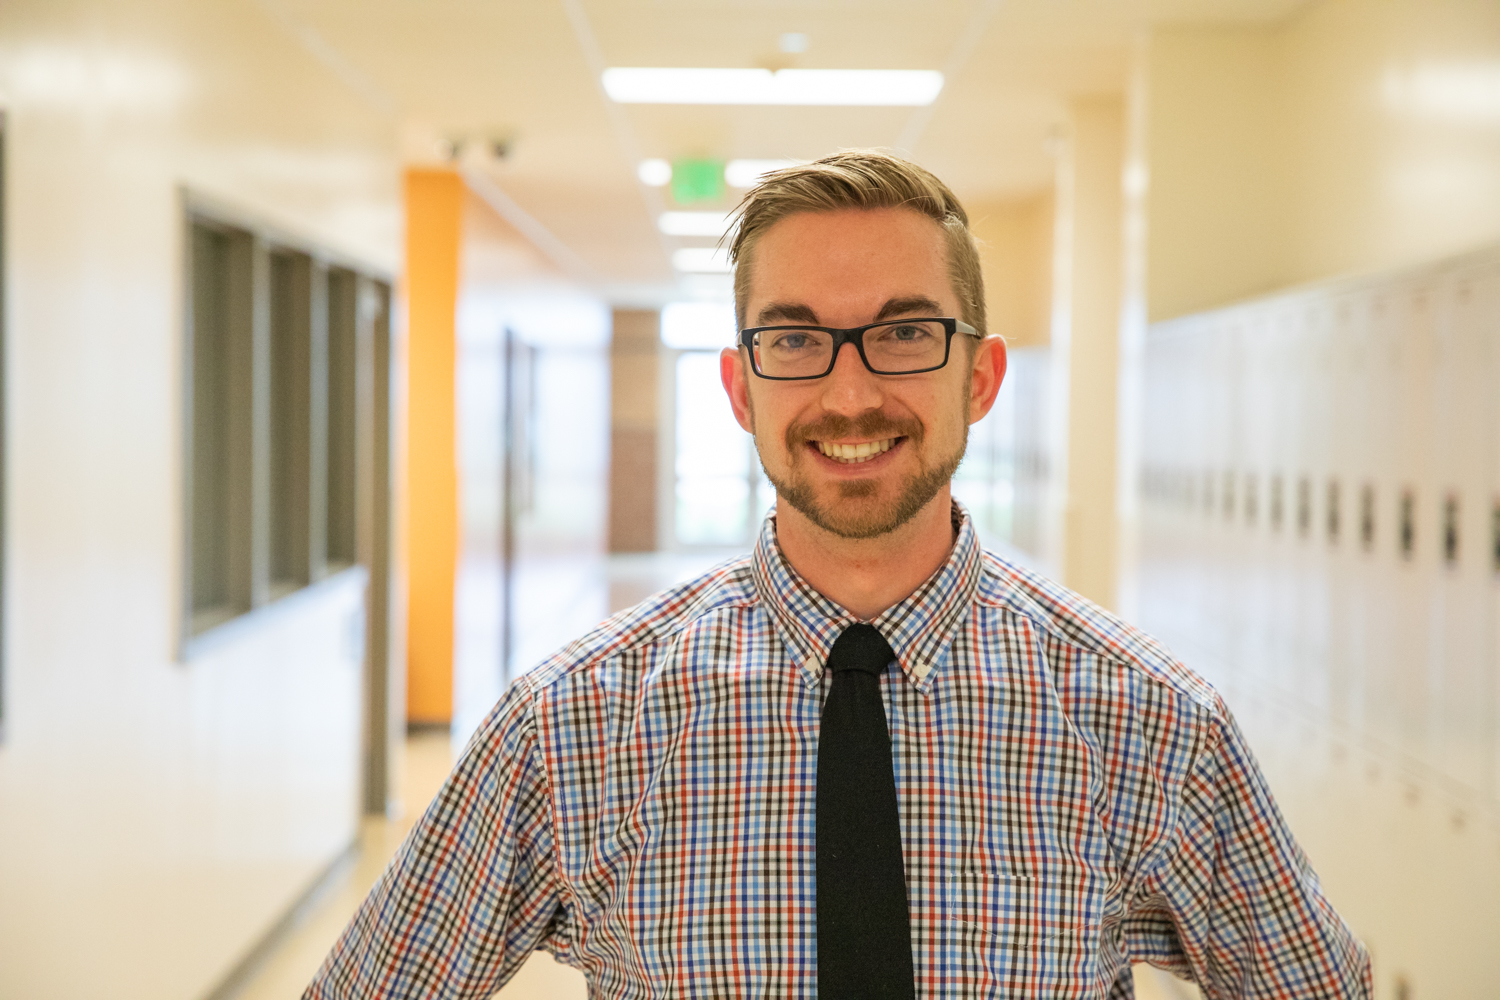 Mr. Andrew Steitz has been teaching at Mead High School for two years.